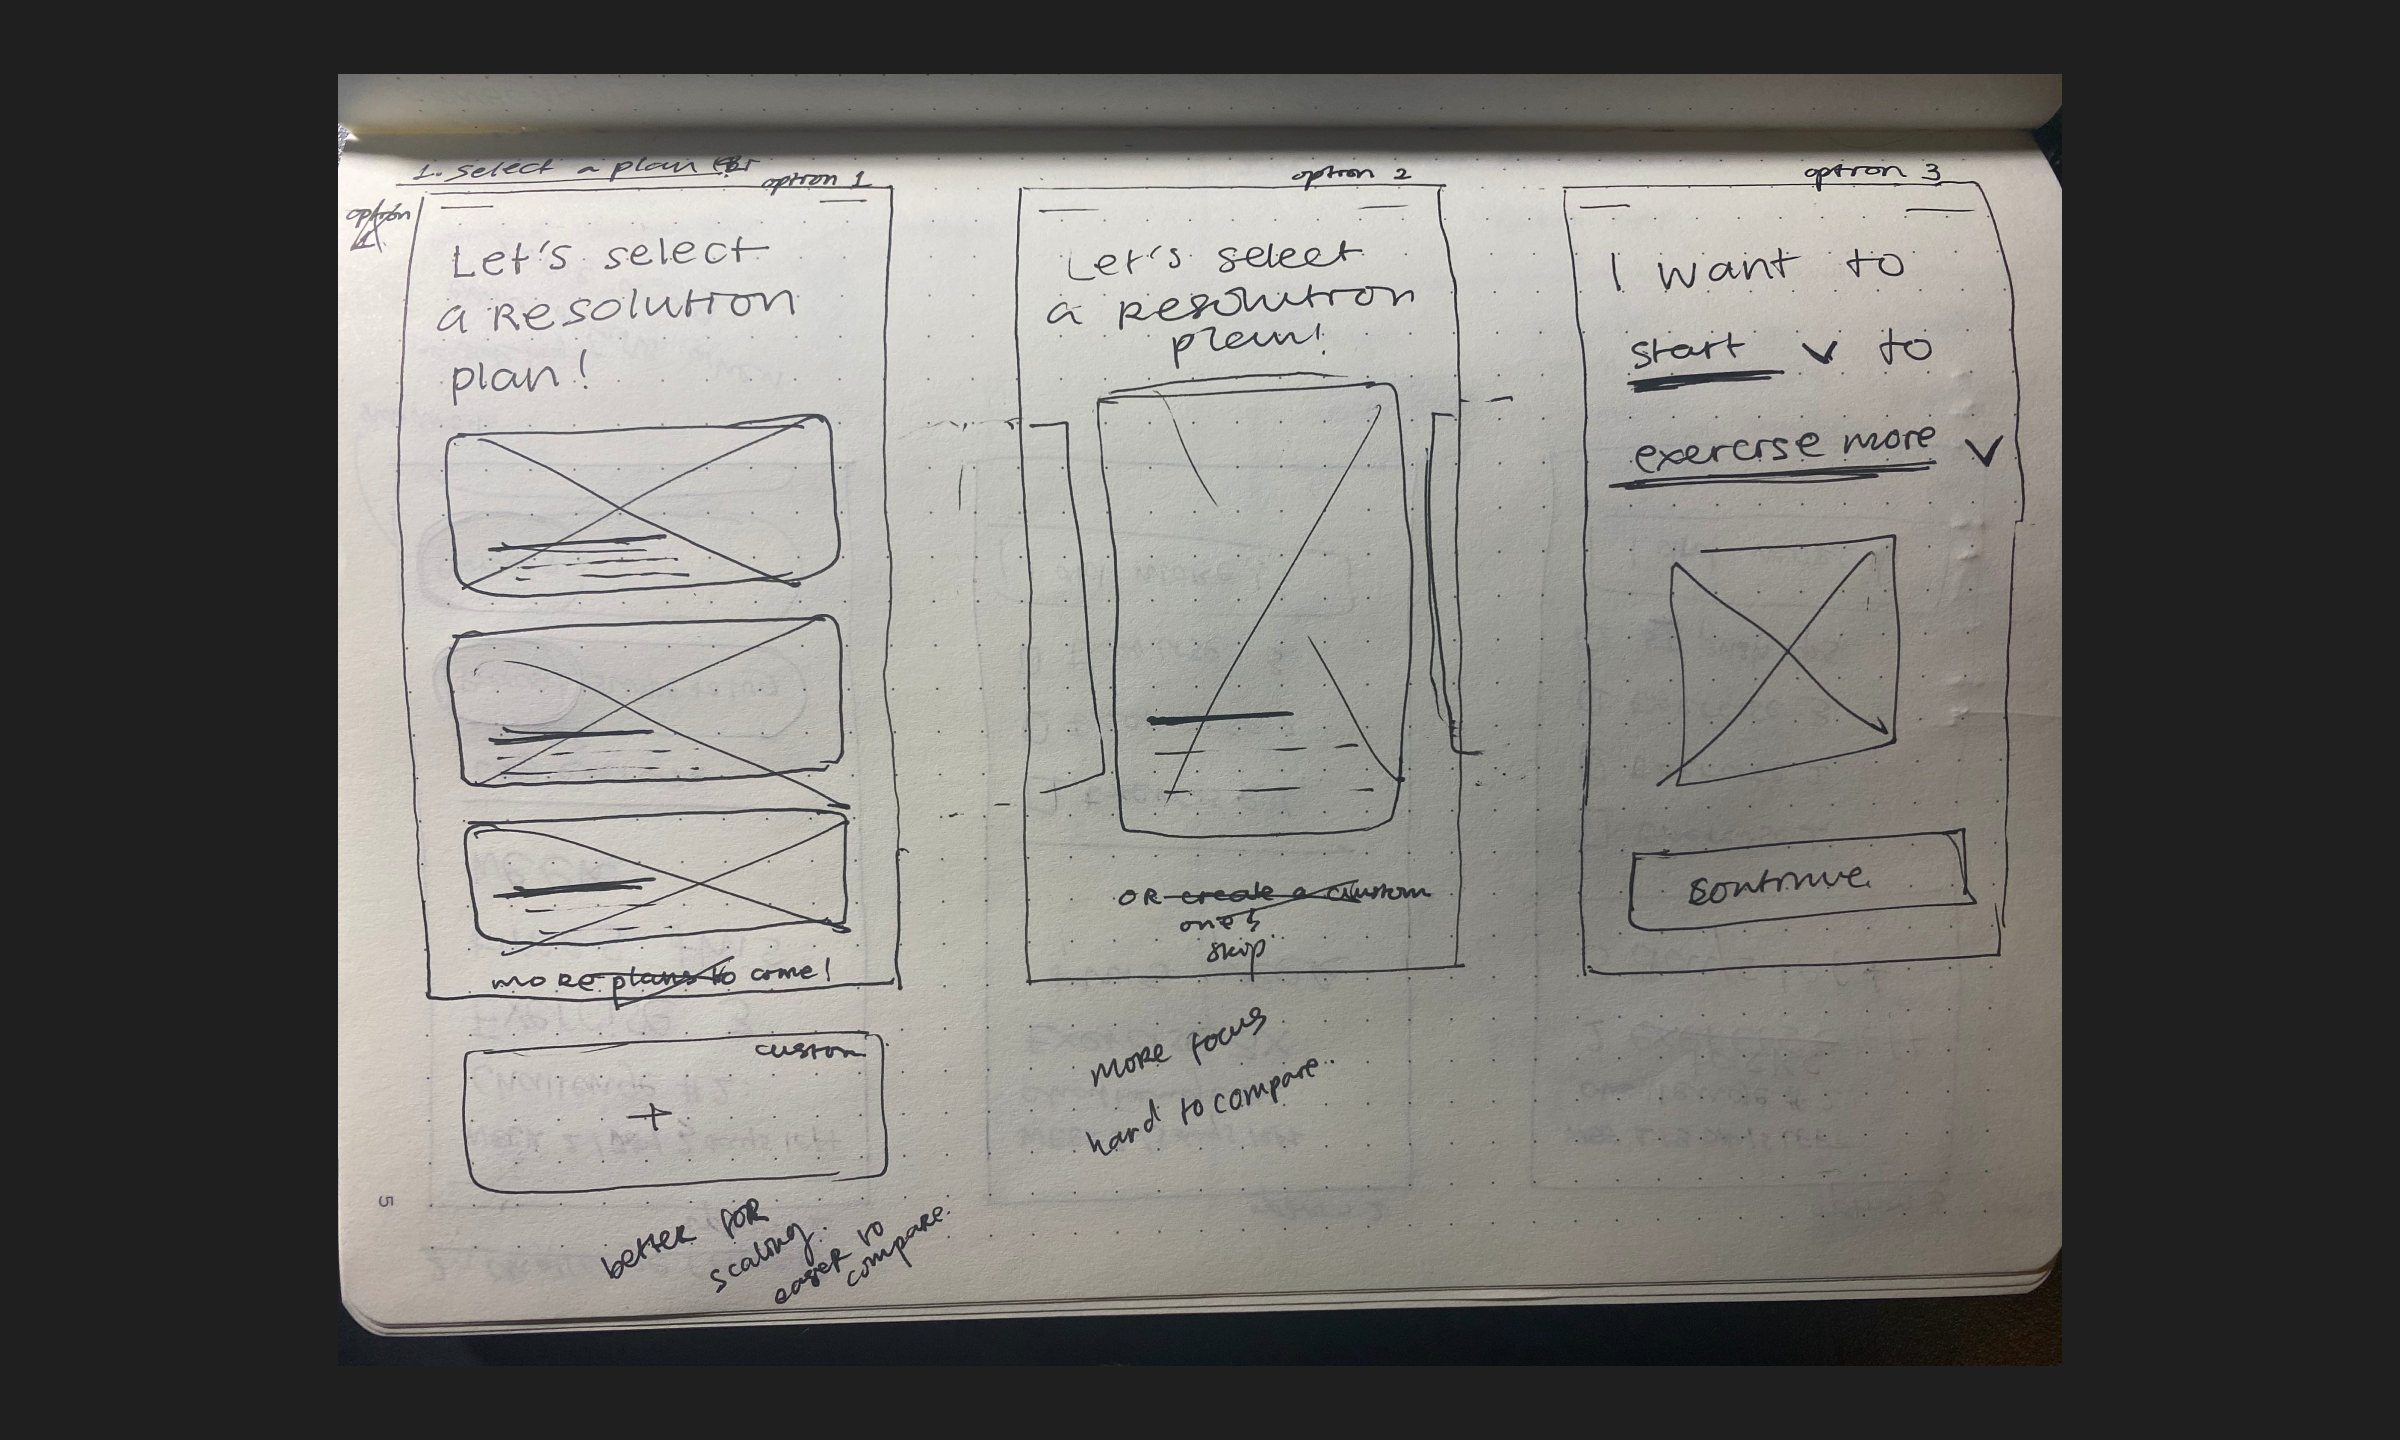 Wireframe sketches for plan options